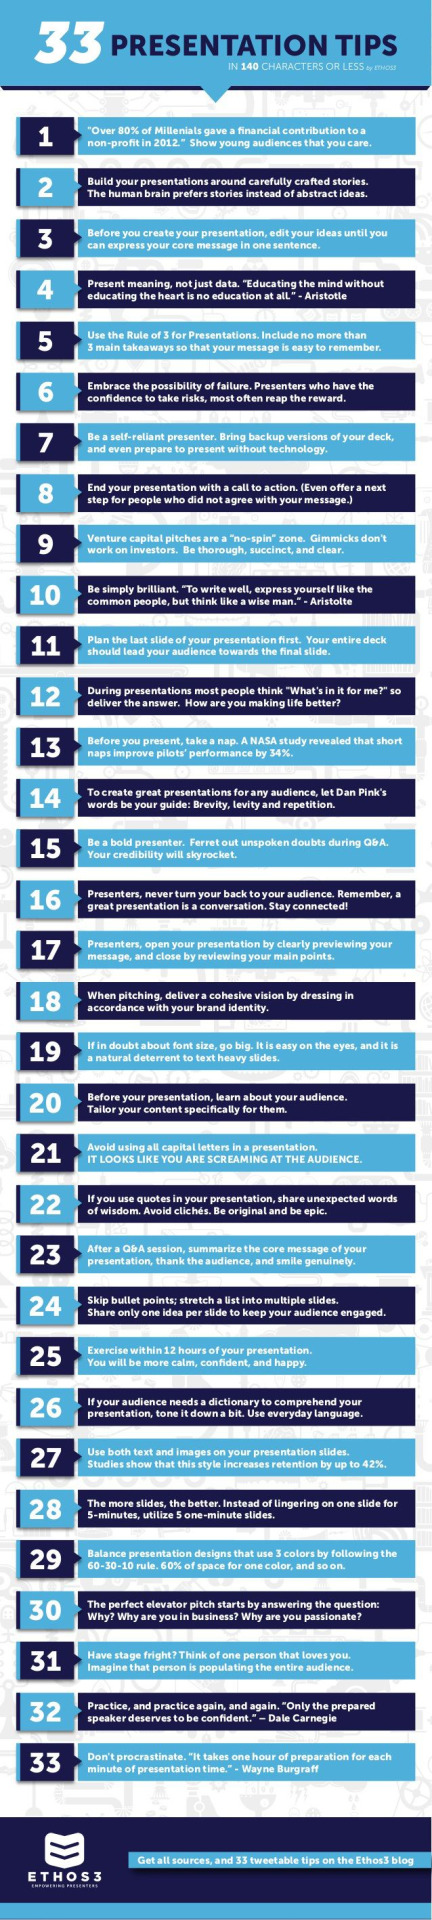 33 #Presentation Tips in 140 Characters or Less | http://www.pinterest.com/pin/160159330473264080 | #Infographic #Infografia #Education #Educación http://click-to-read-mo.re/p/84D6/53413f12